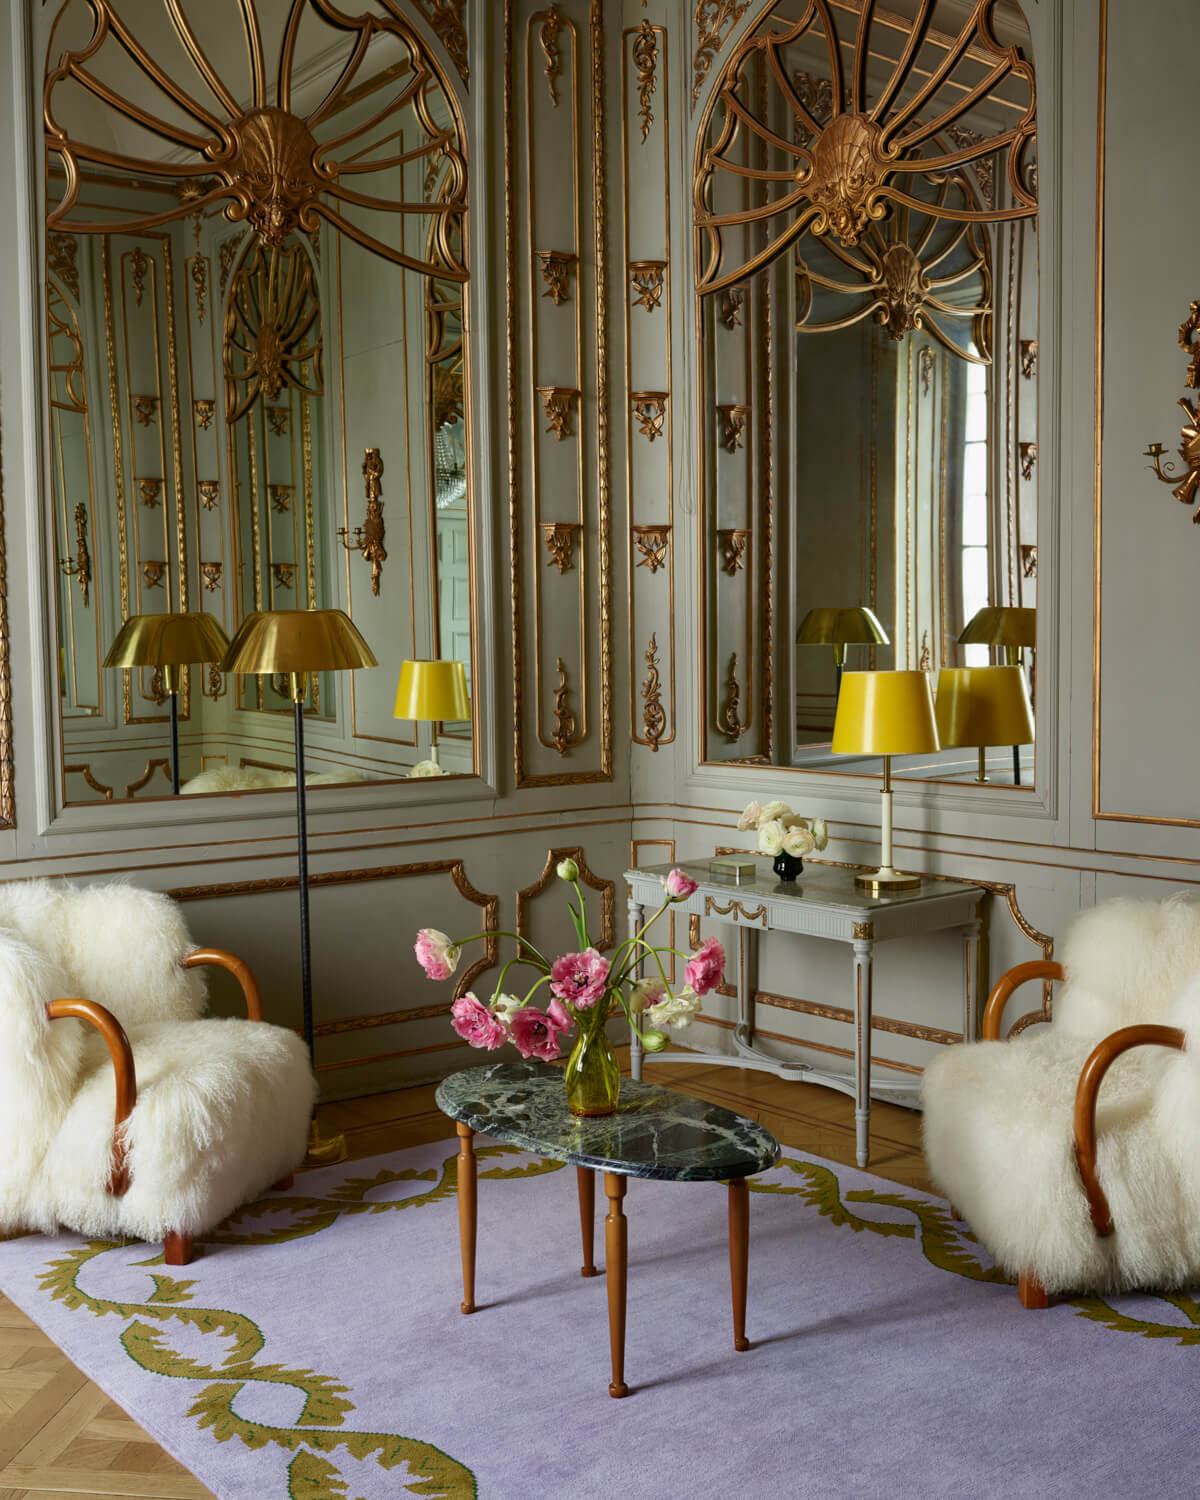 Climbing Vine displayed in an amazing ornamented room together with sheep fur armchairs.